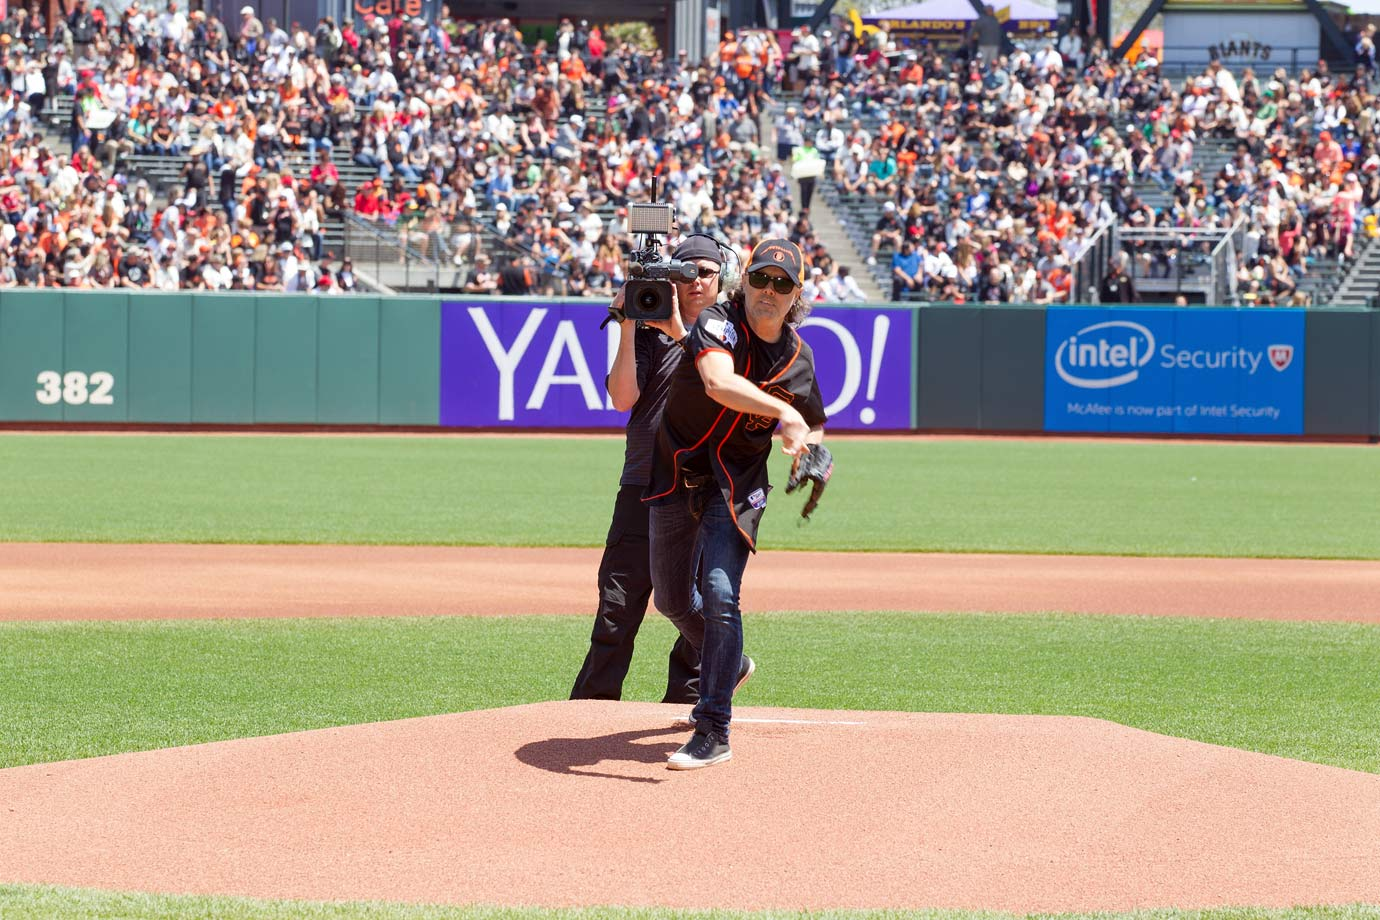 May 2 at AT&T Park in San Francisco